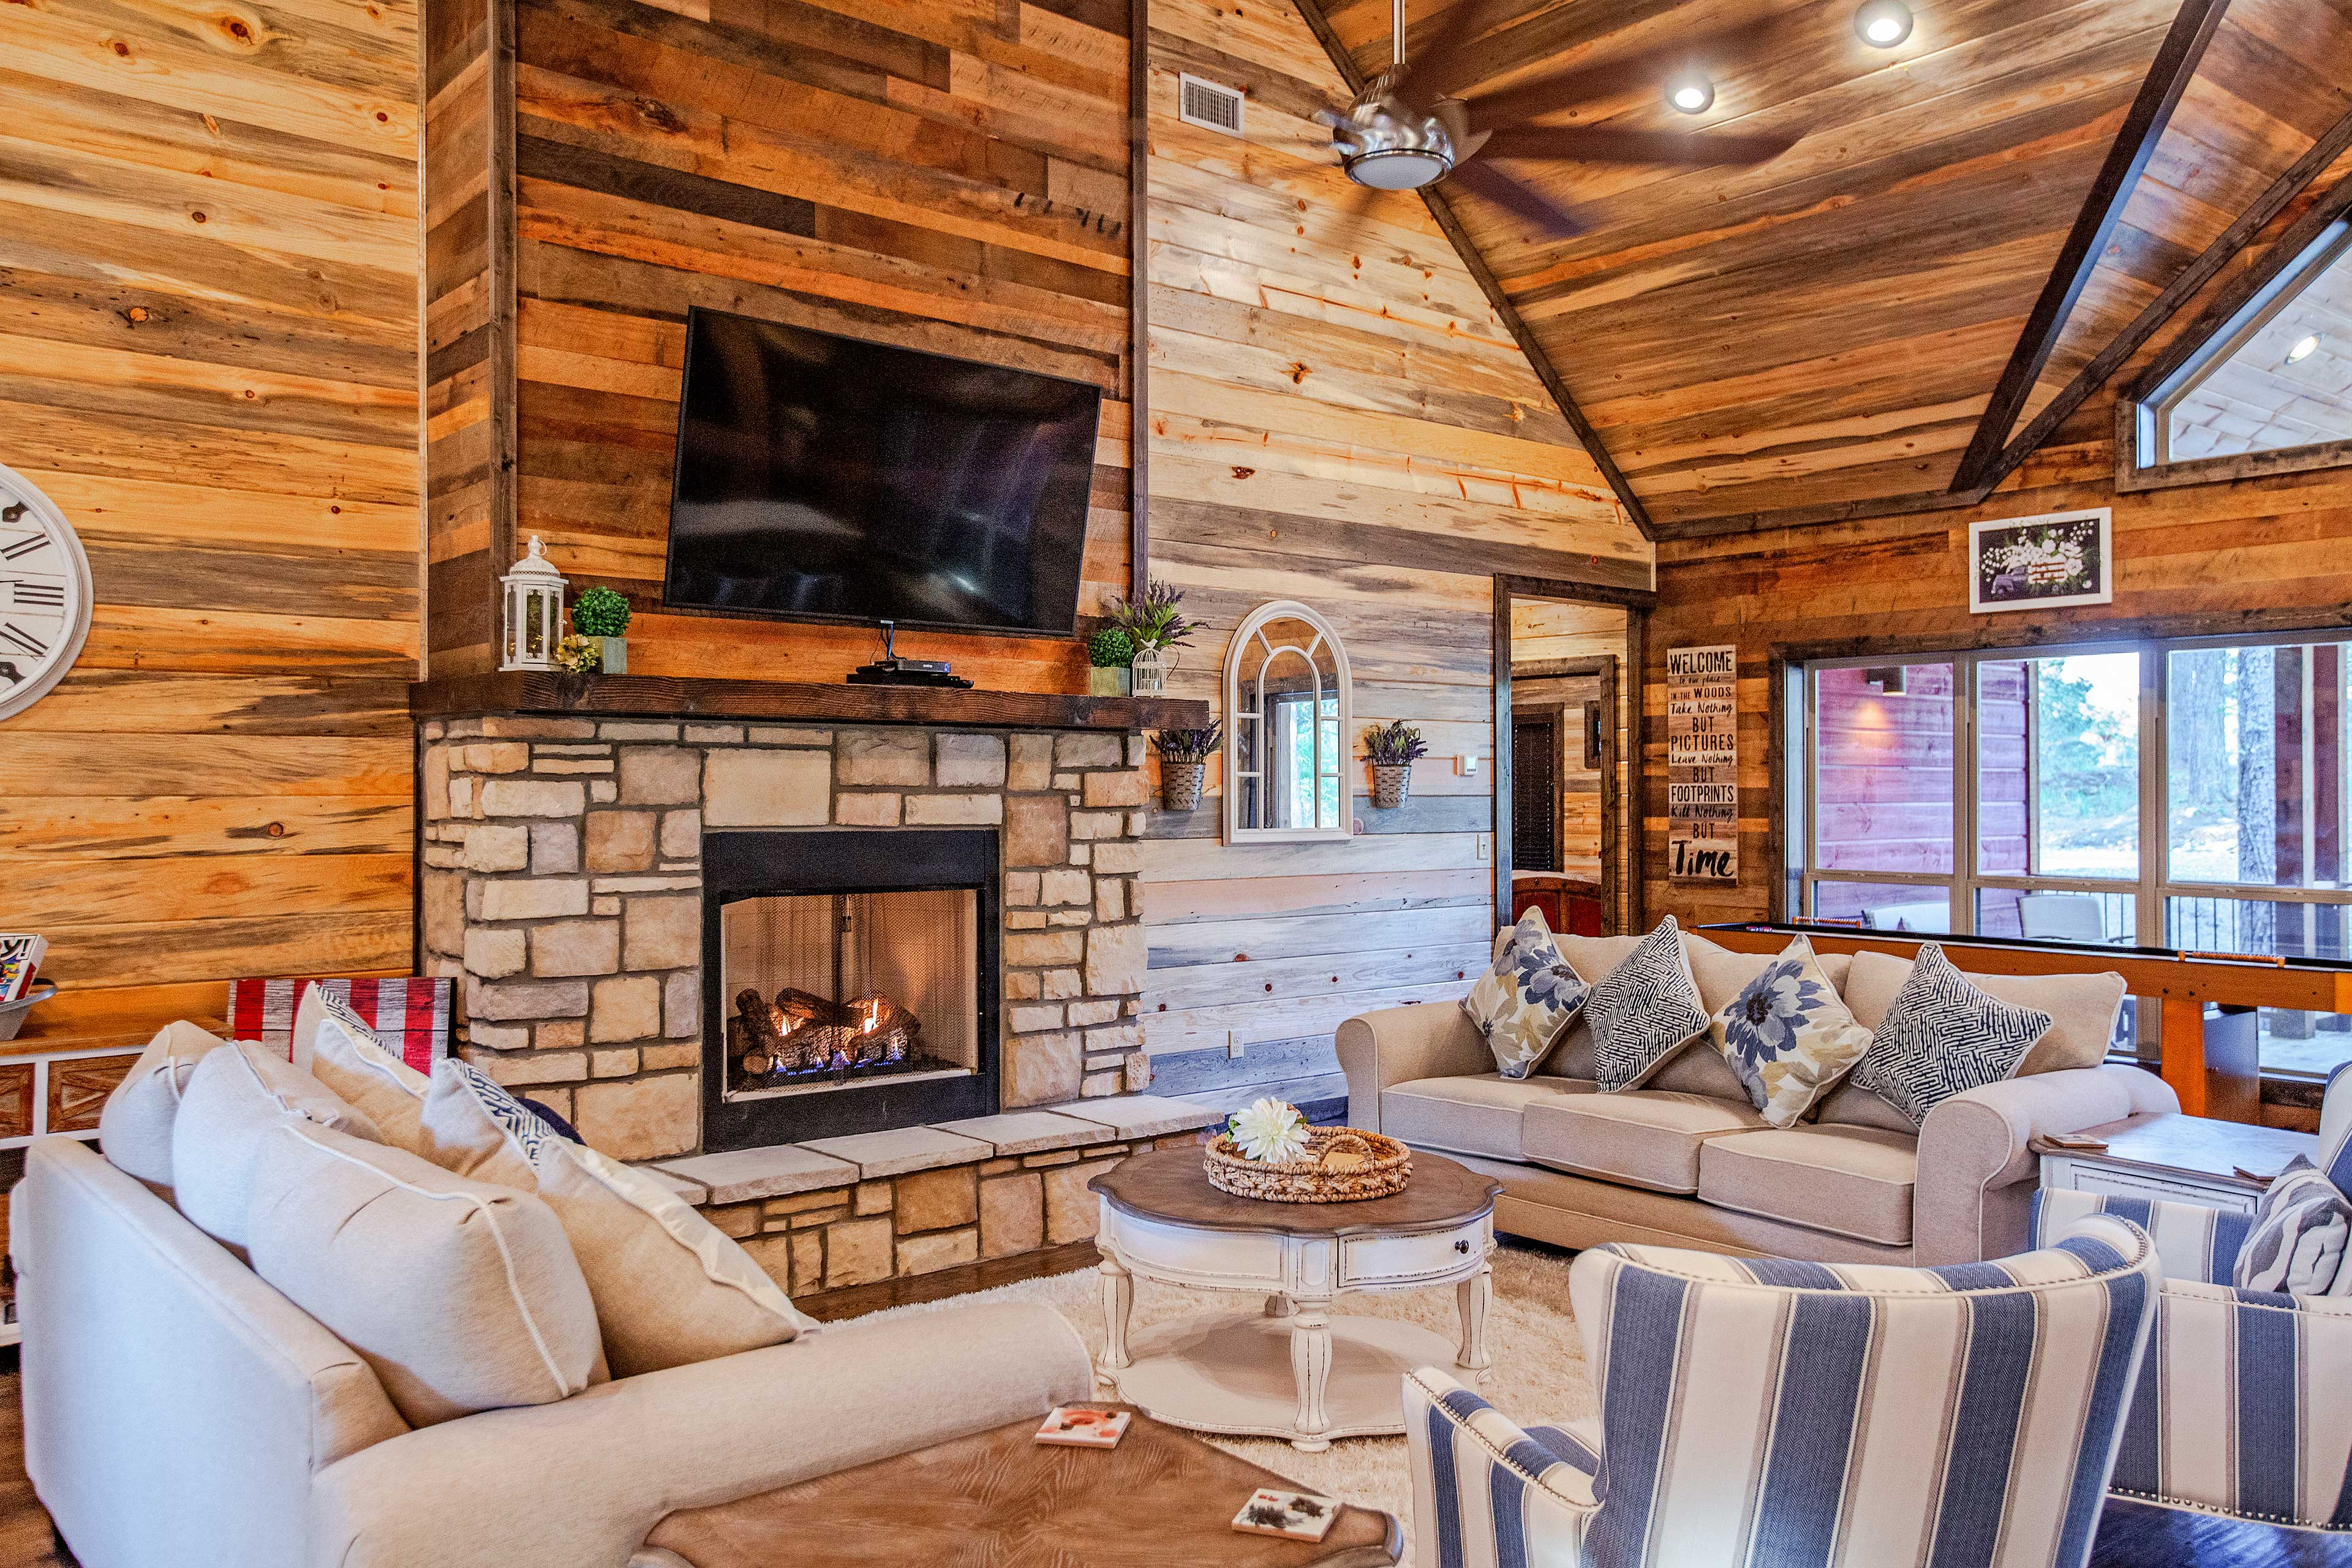 Cozy nights can be spent gathered around the gas fireplace.